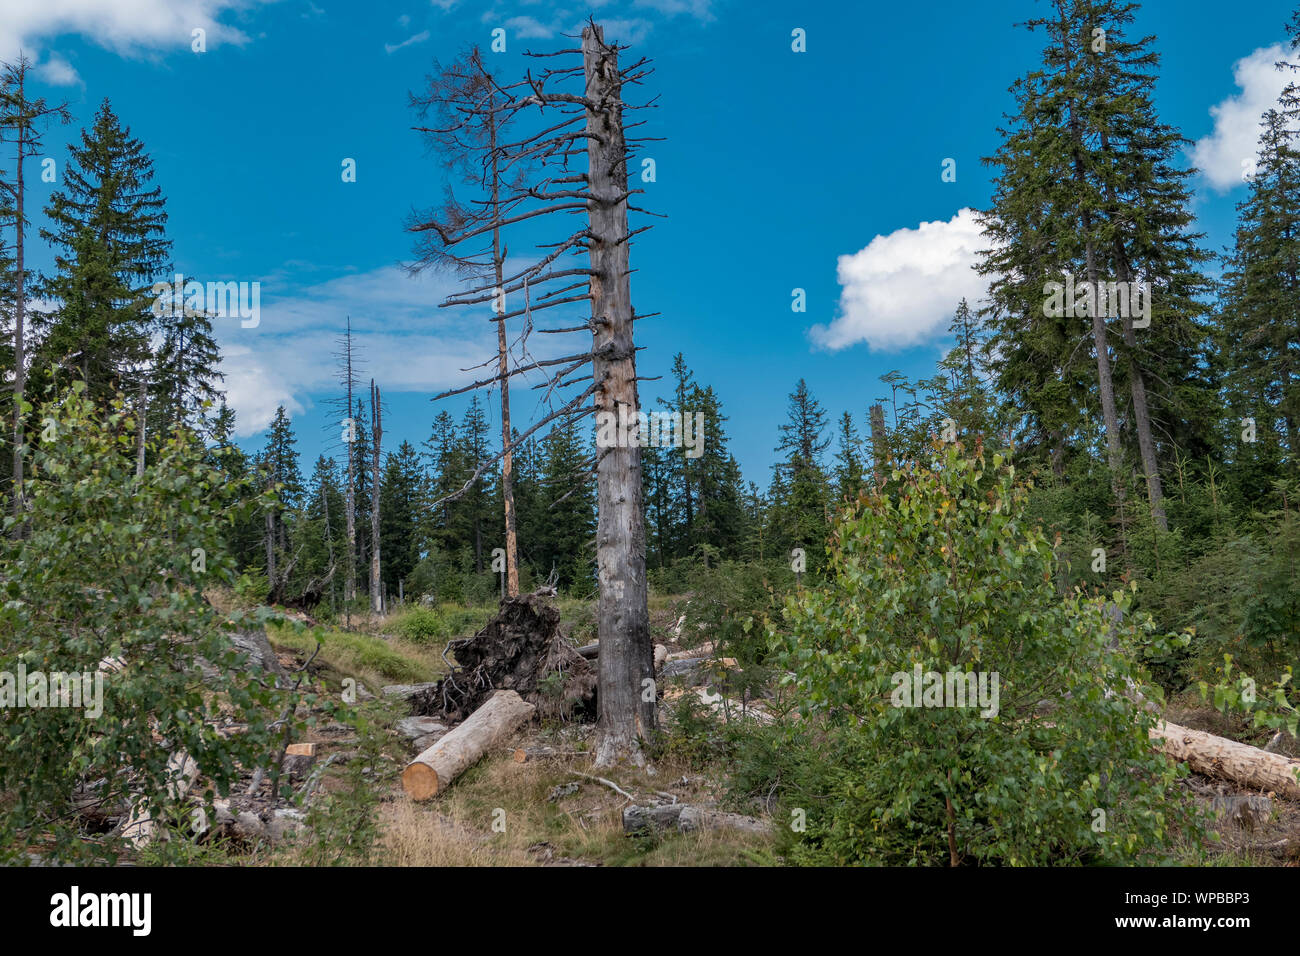 Invasion of the bark beetle destroys national park trees Stock Photo